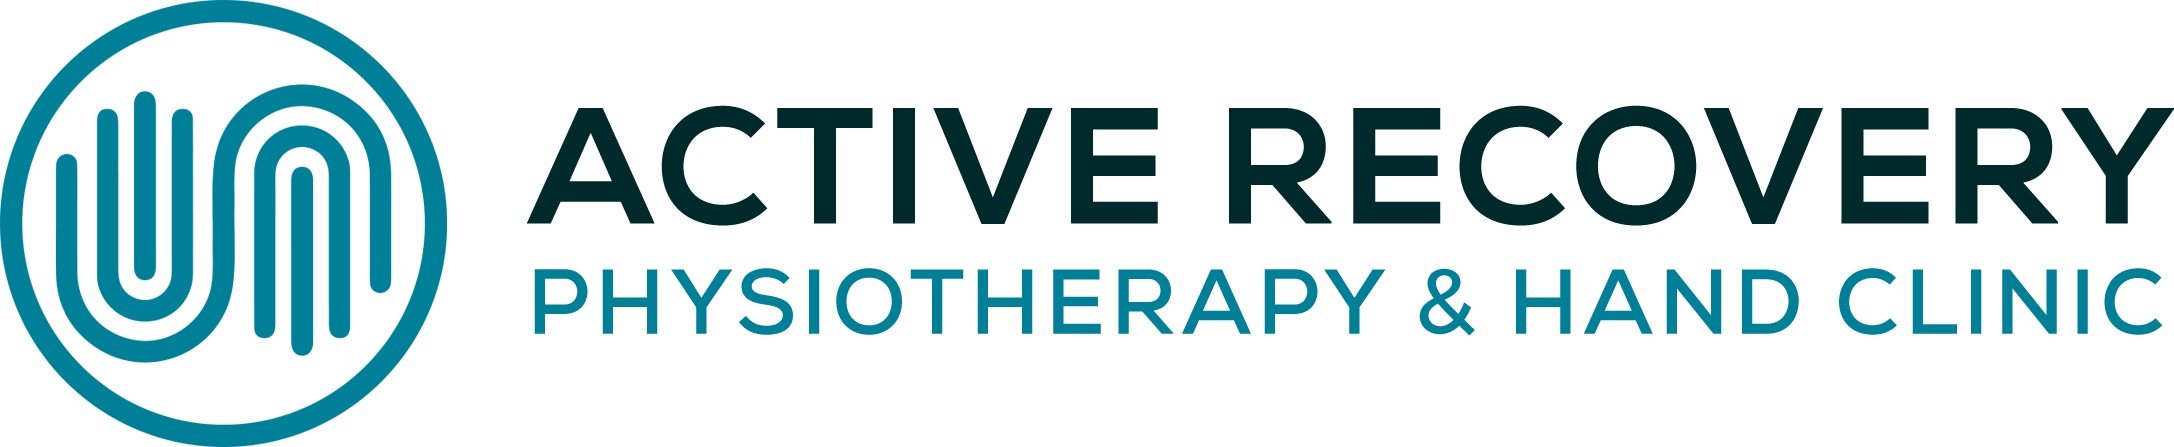 Active Recovery Physiotherapy & Hand Clinic